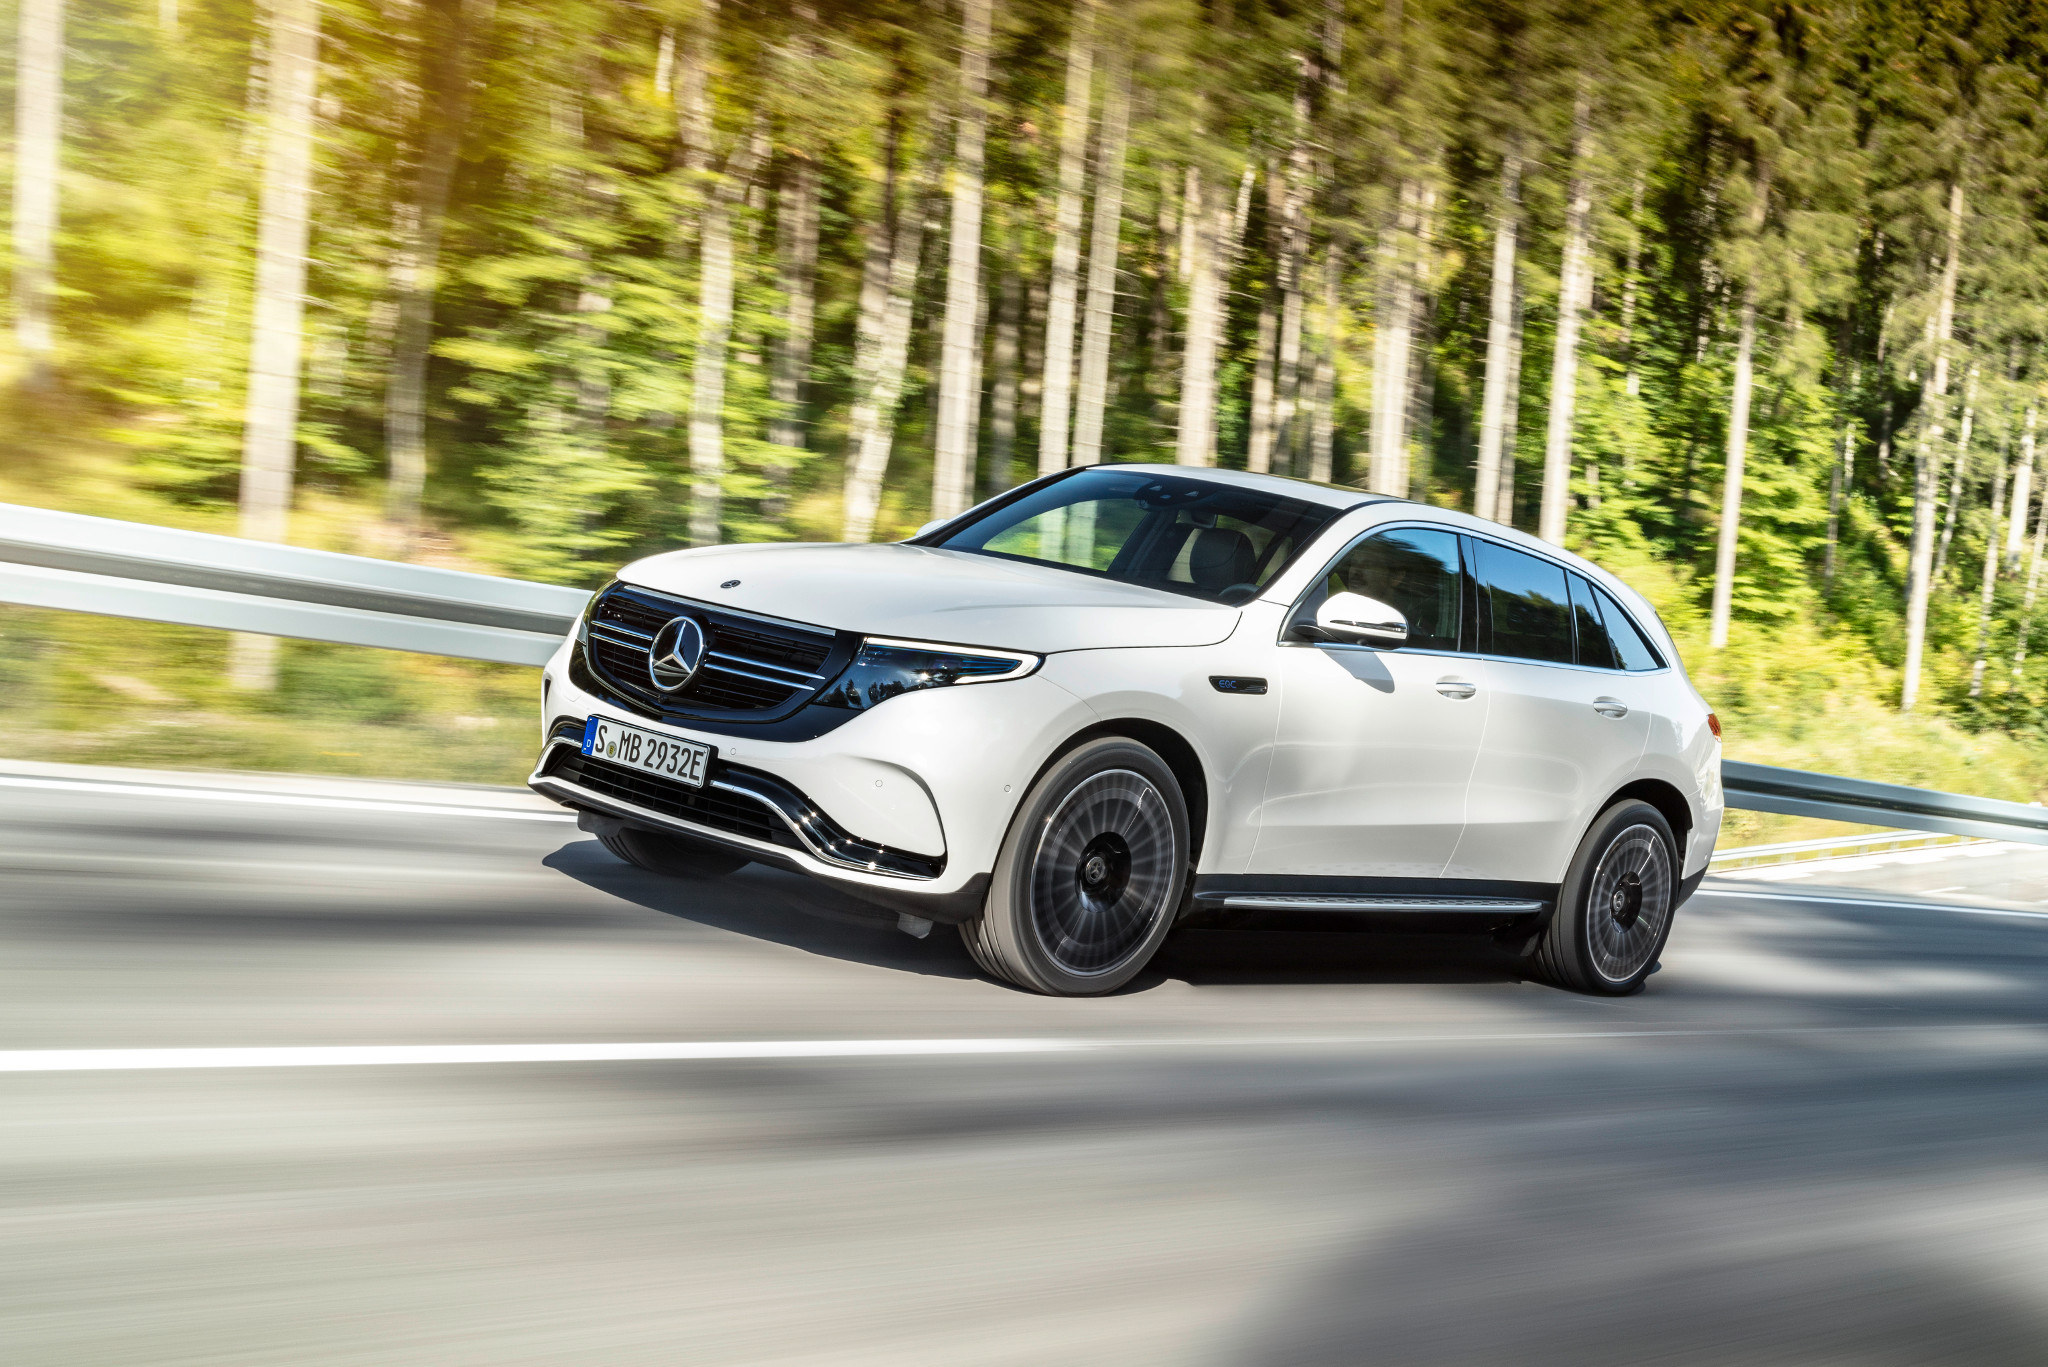 2020 Mercedes-Benz EQC400 Priced Under $70,000 to Start